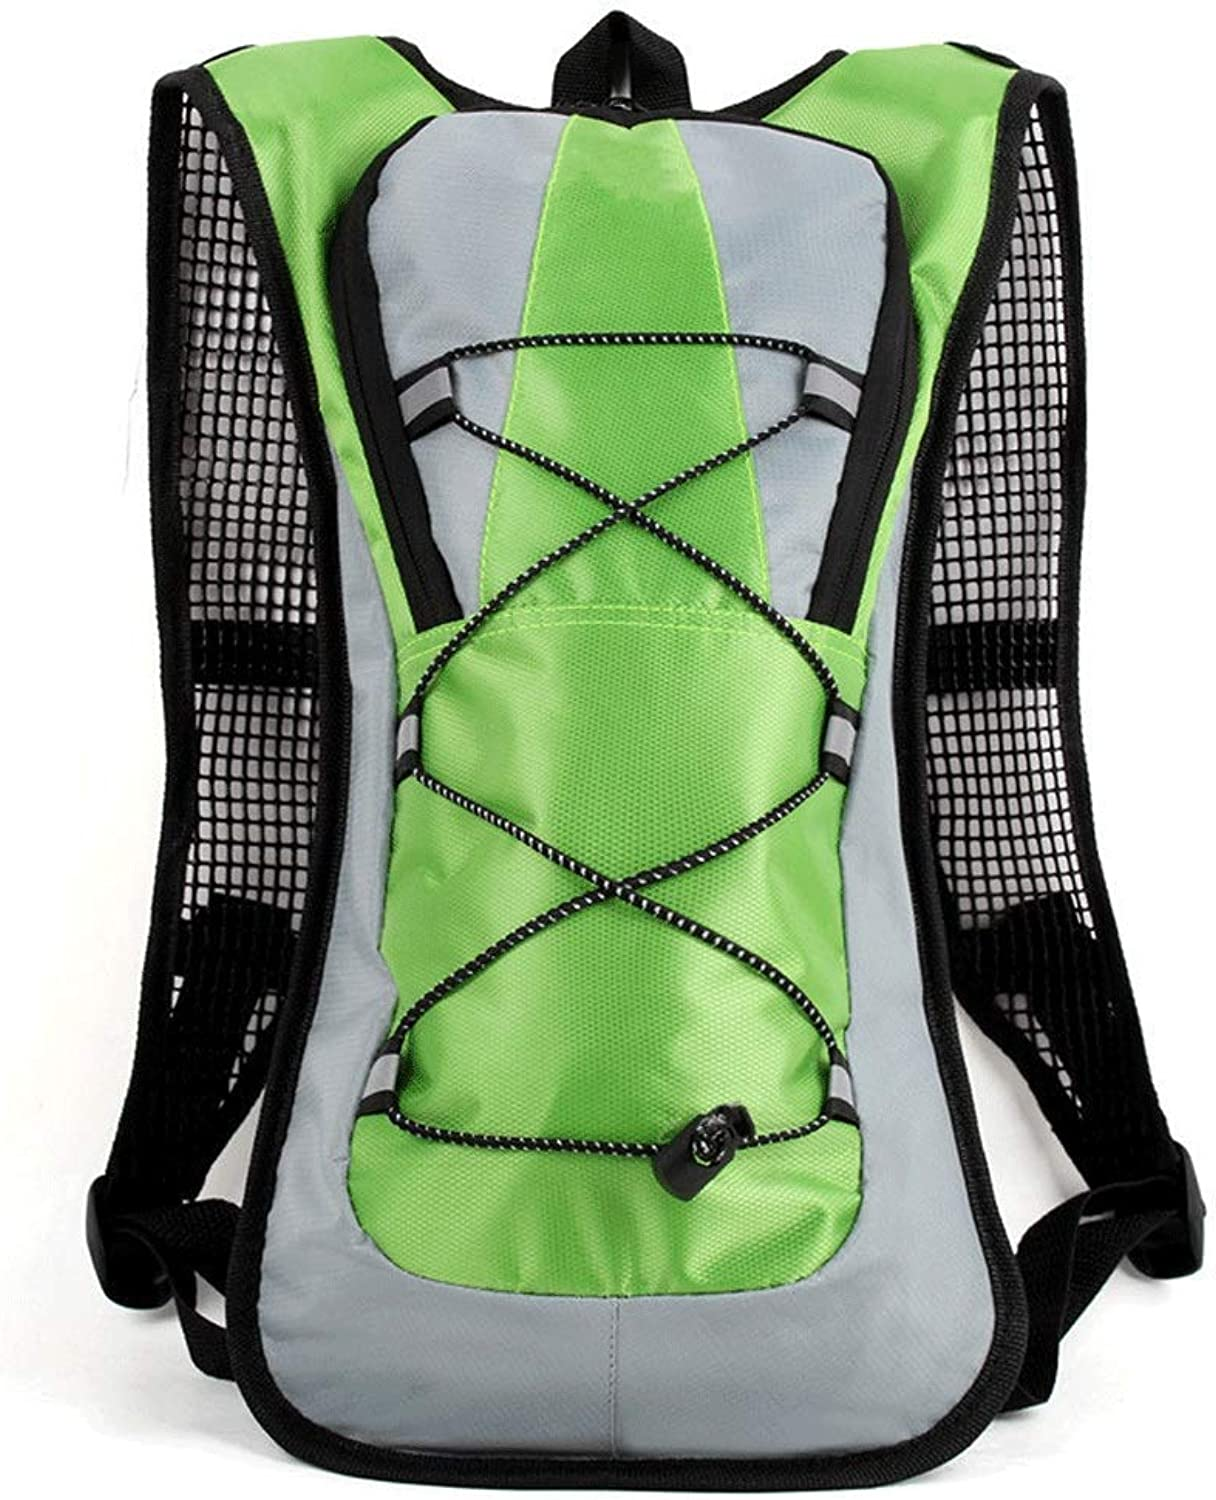 HKJhk Outdoor Sports Bike Riding Hiking Hiking Running Men and Women Shoulders Large Capacity Backpack (color   Green)